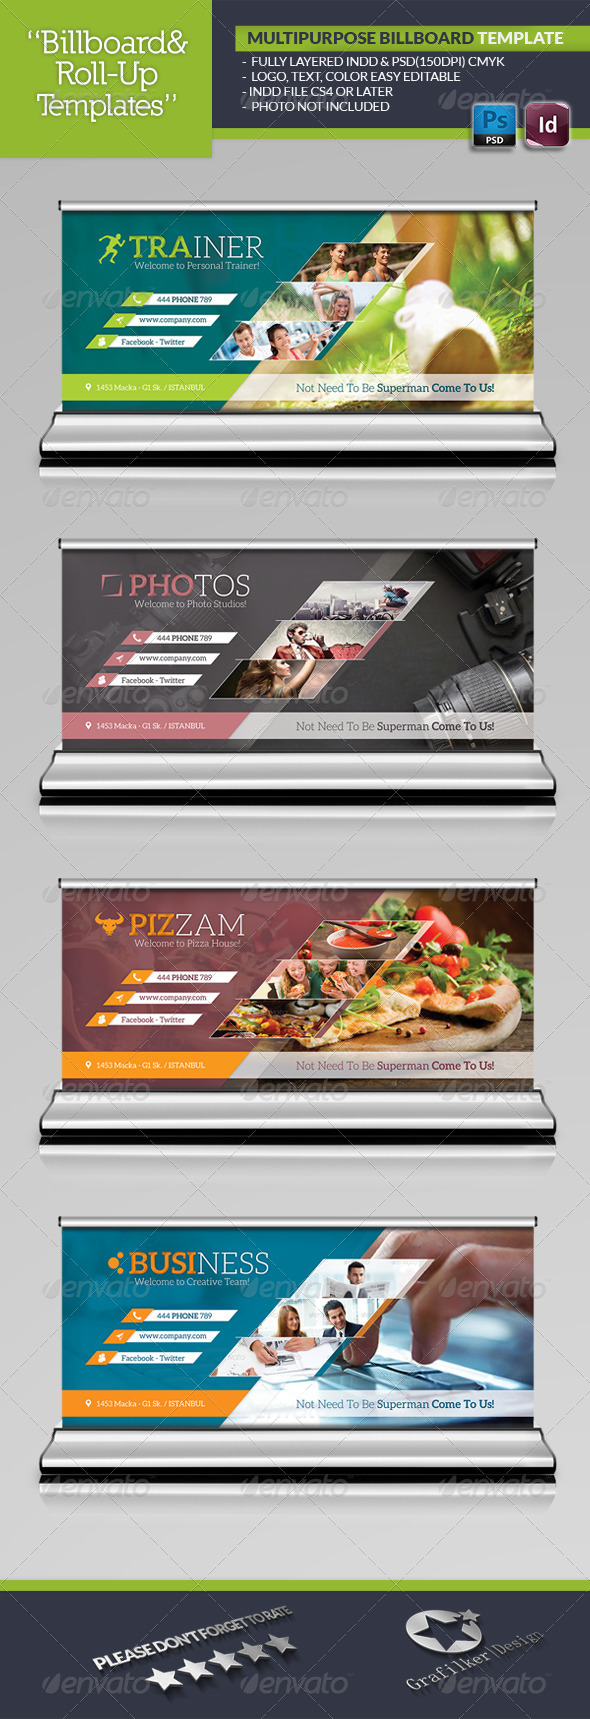 GraphicRiver Multipurpose Billboard Template 5902595